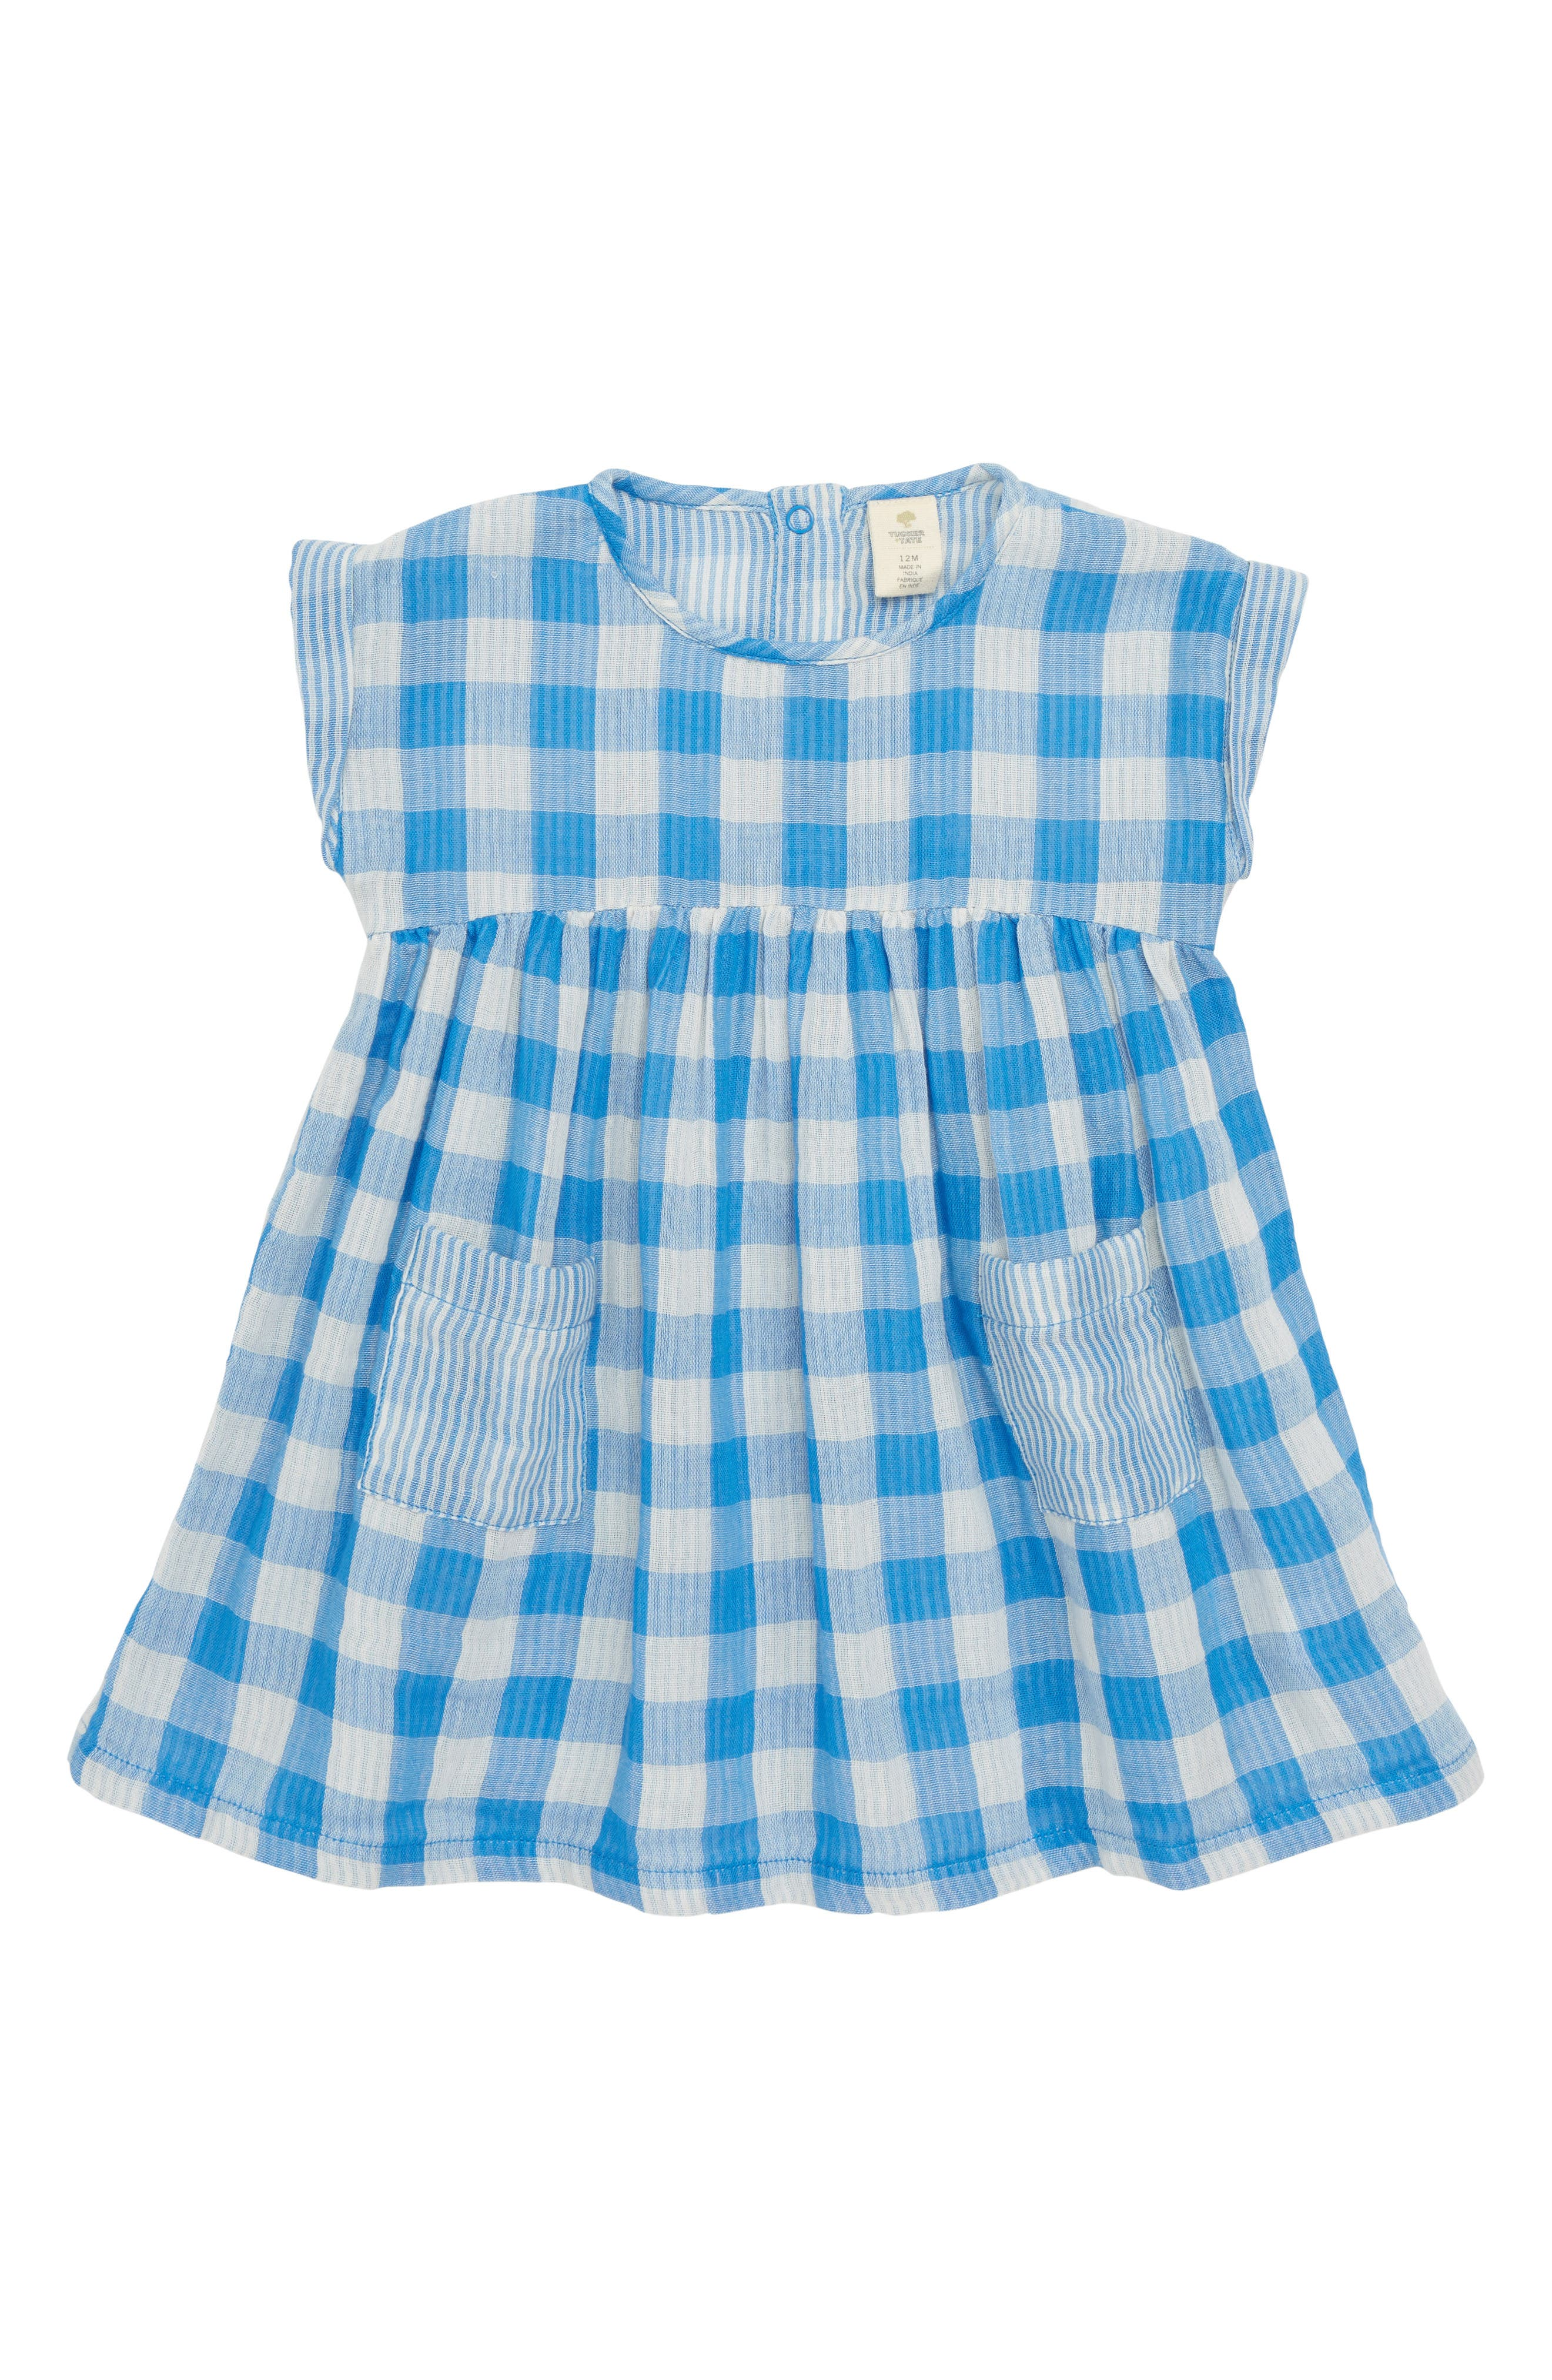 Gingham Woven Dress,                         Main,                         color, 420